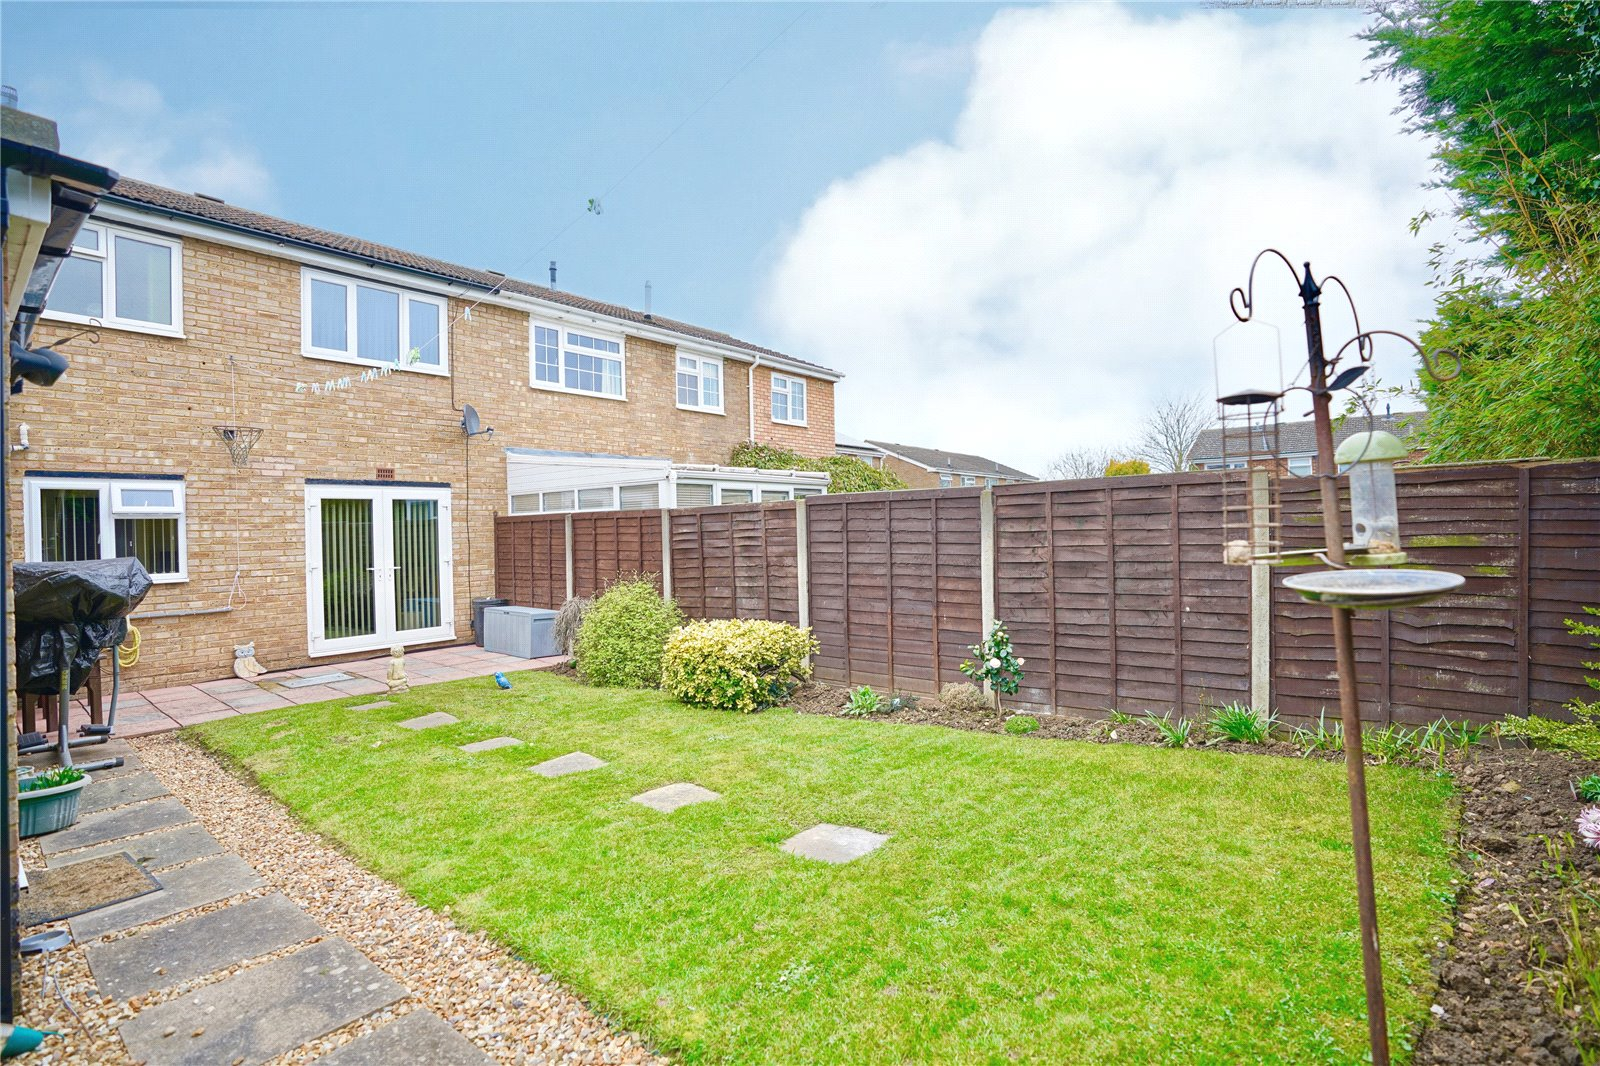 4 bed house for sale in Eaton Socon, PE19 8HU  - Property Image 13